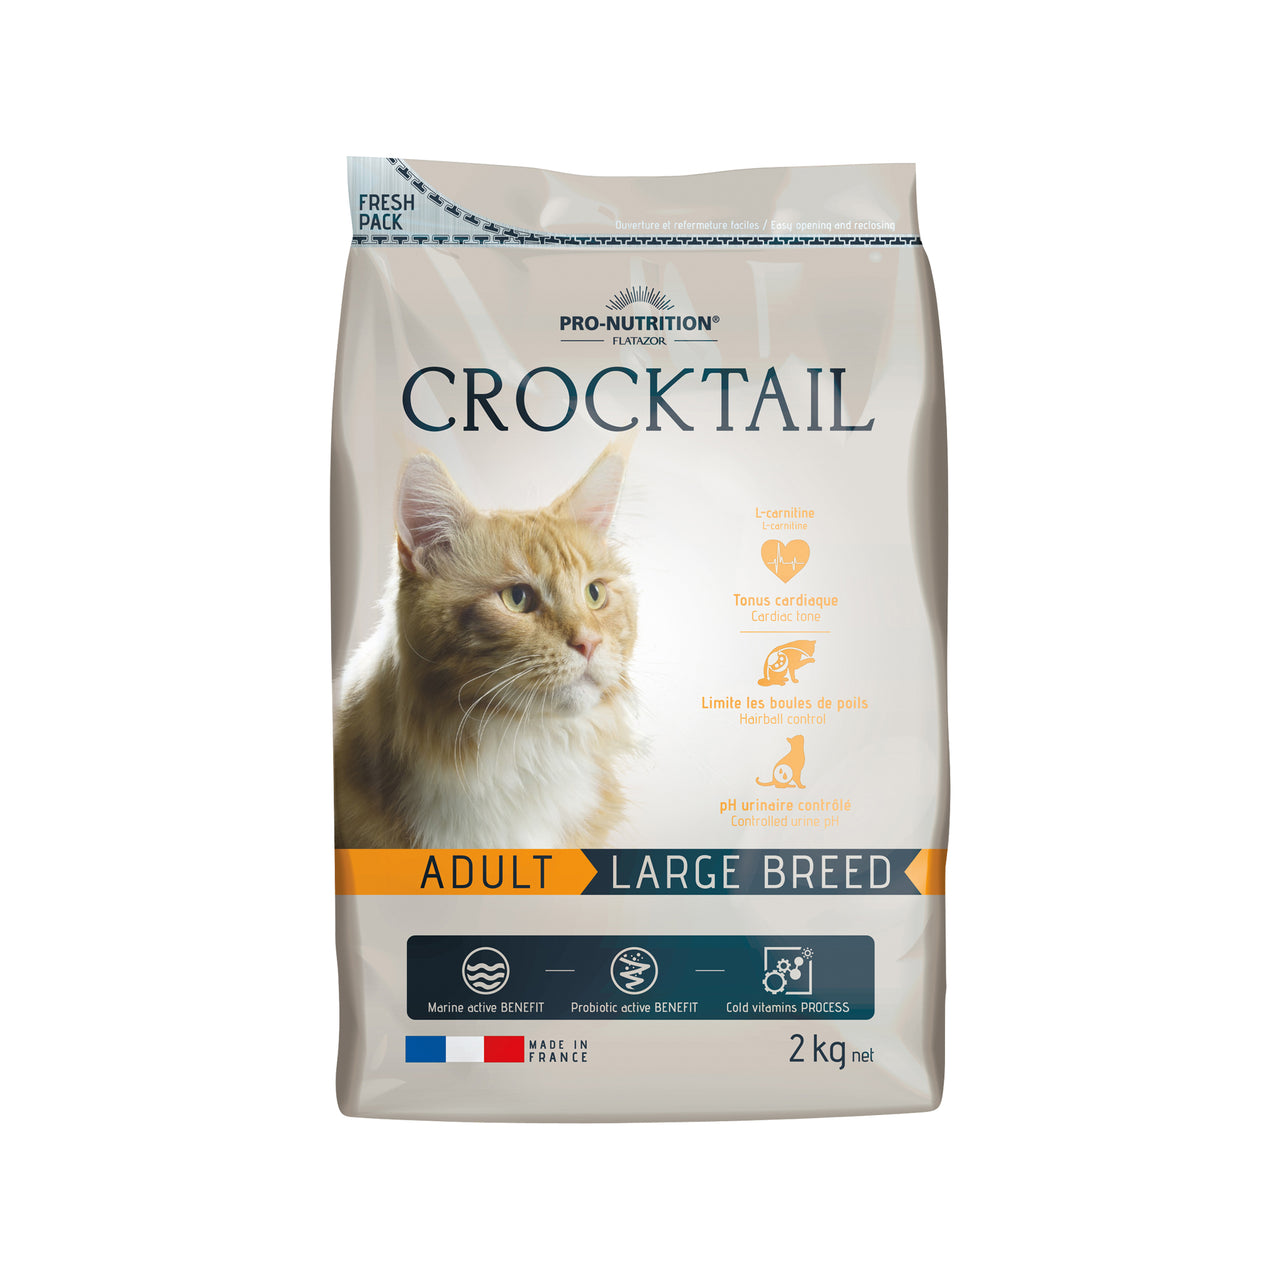 Crocktail Adult Large Breed 2kg